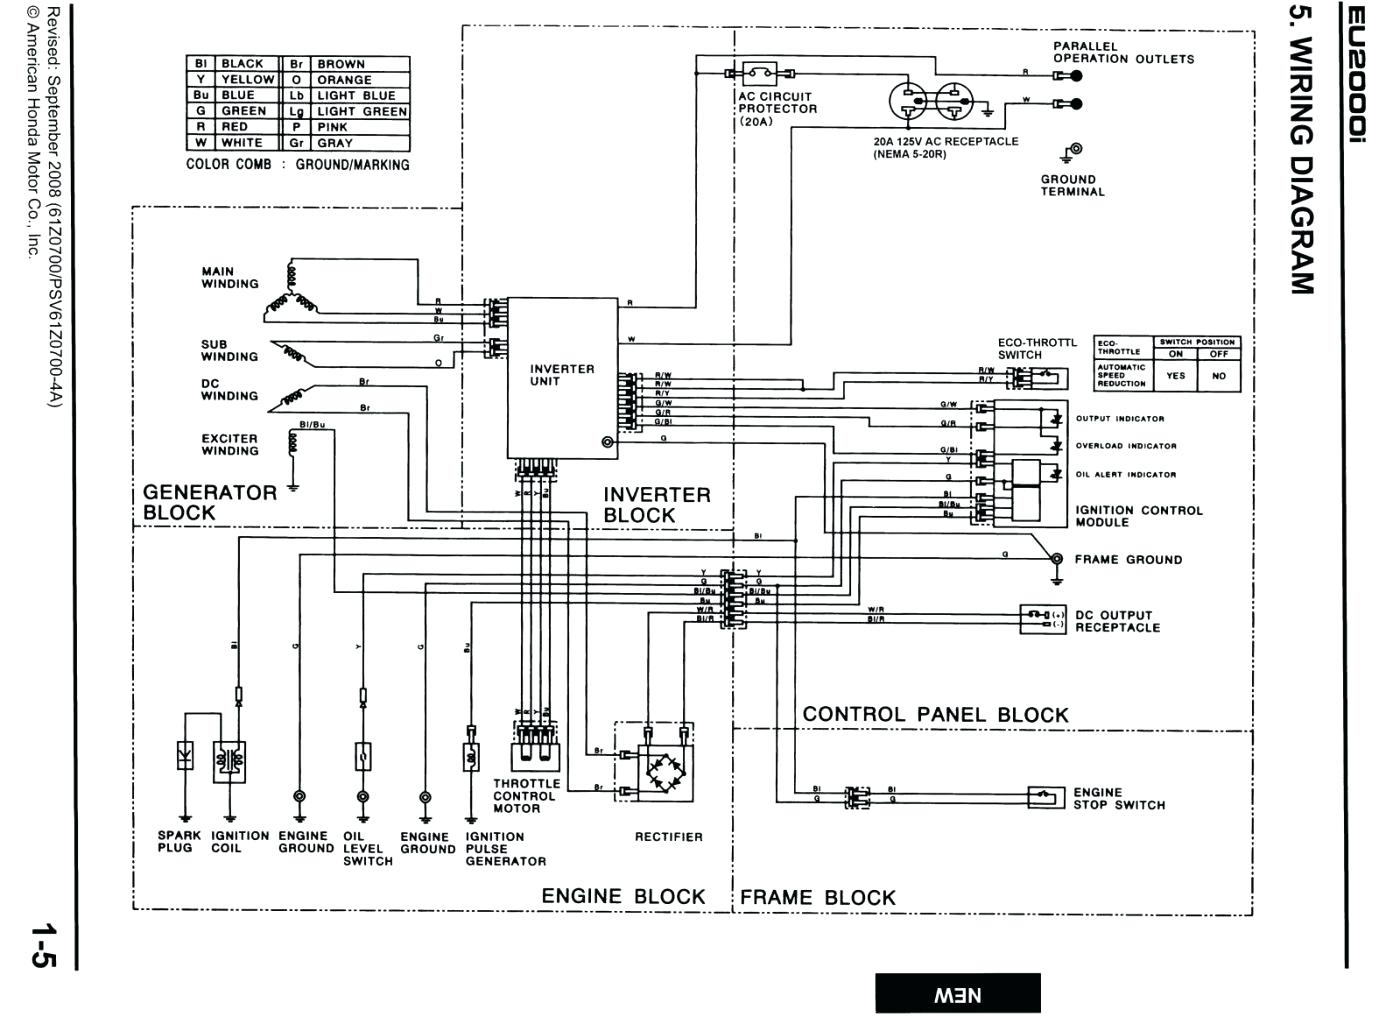 Rv Tank Monitor Wiring Diagram Circuit Schematic Panel Holding Sample Tanks